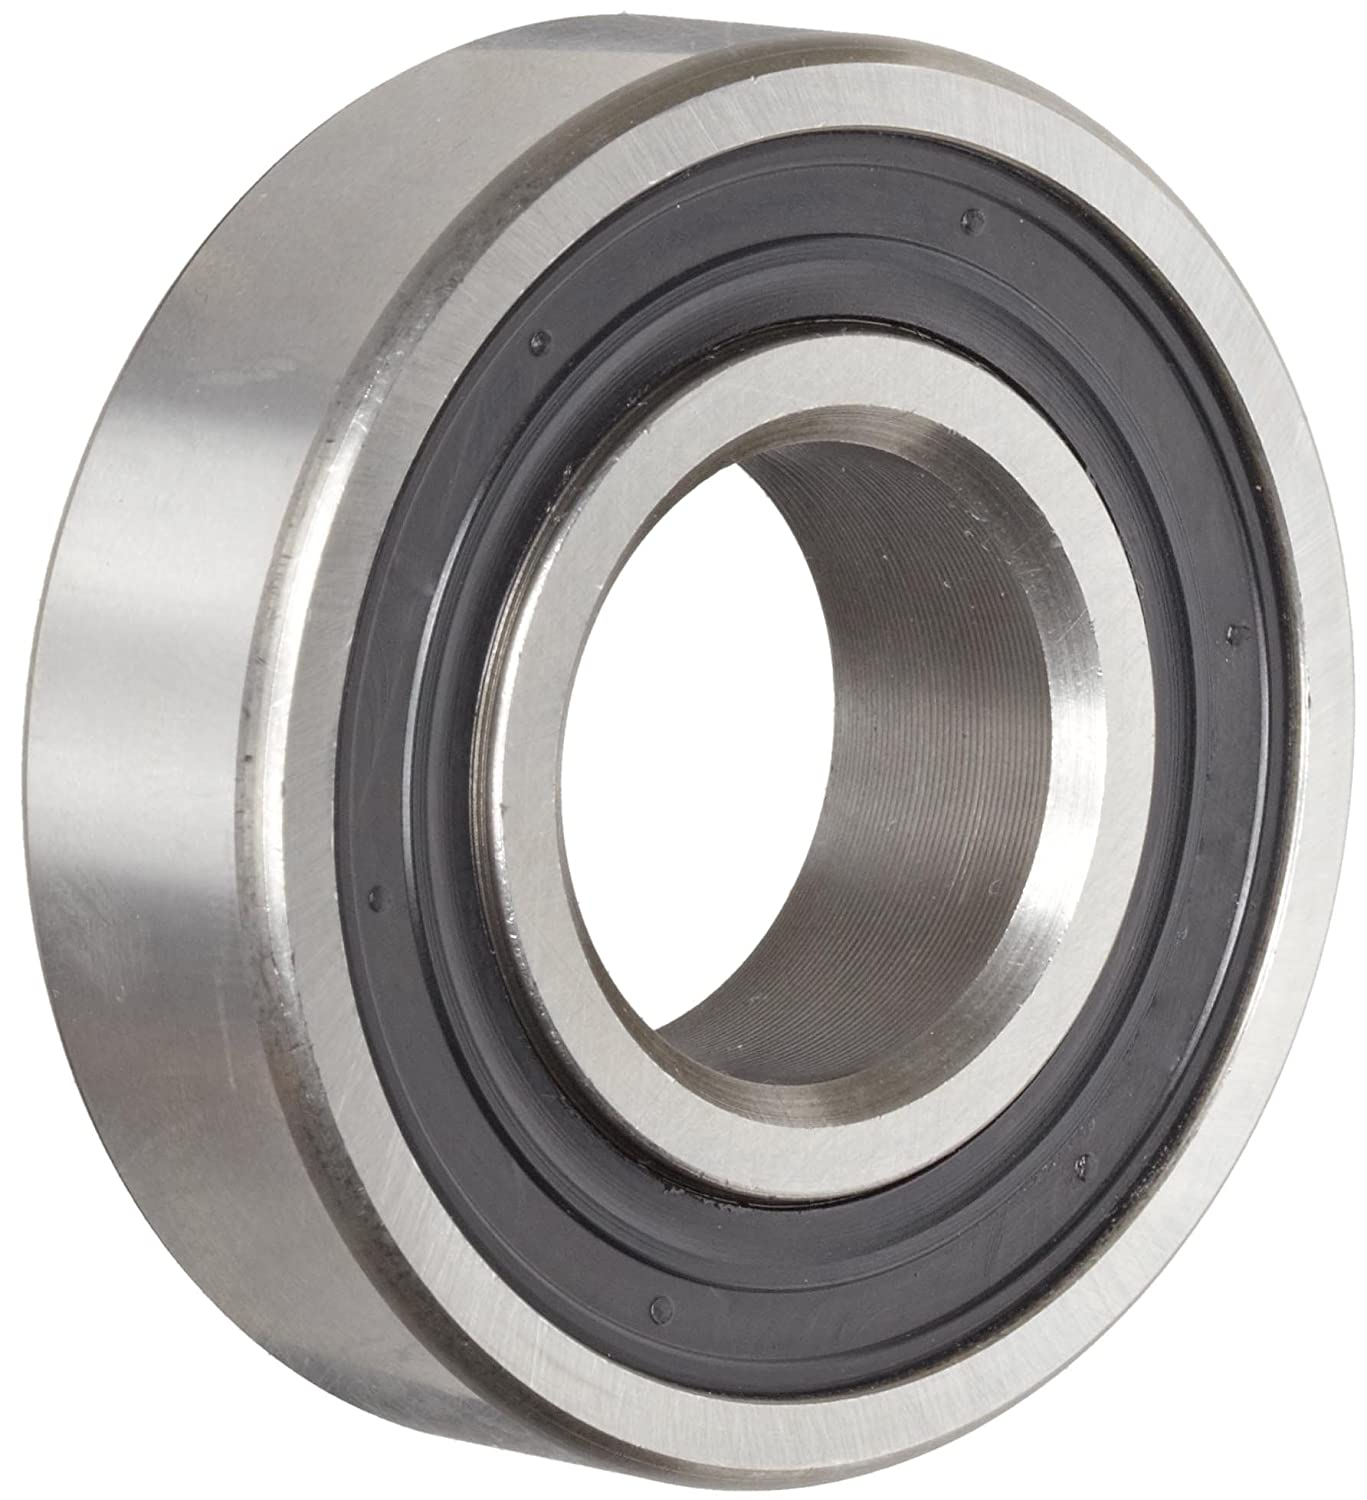 Nice Ball Bearing 3040DC Double Sealed, 52100 Bearing Quality Steel, 0.8750' Bore x 2.0000' OD x 0.5625' Width 0.8750 Bore x 2.0000 OD x 0.5625 Width RBC Bearings